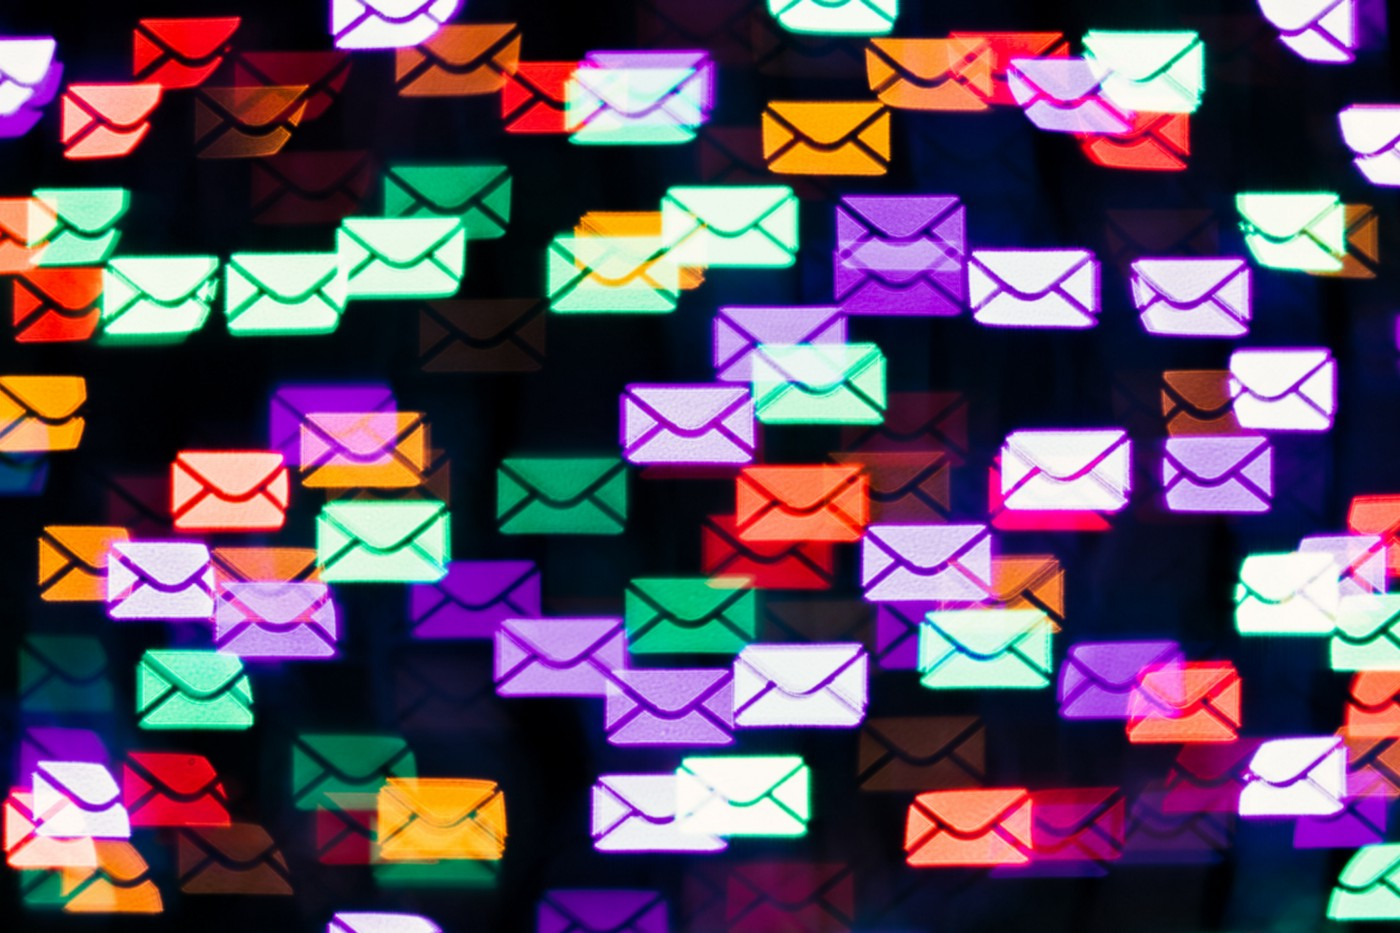 Colorful neon mail envelope notification icons across the screen.